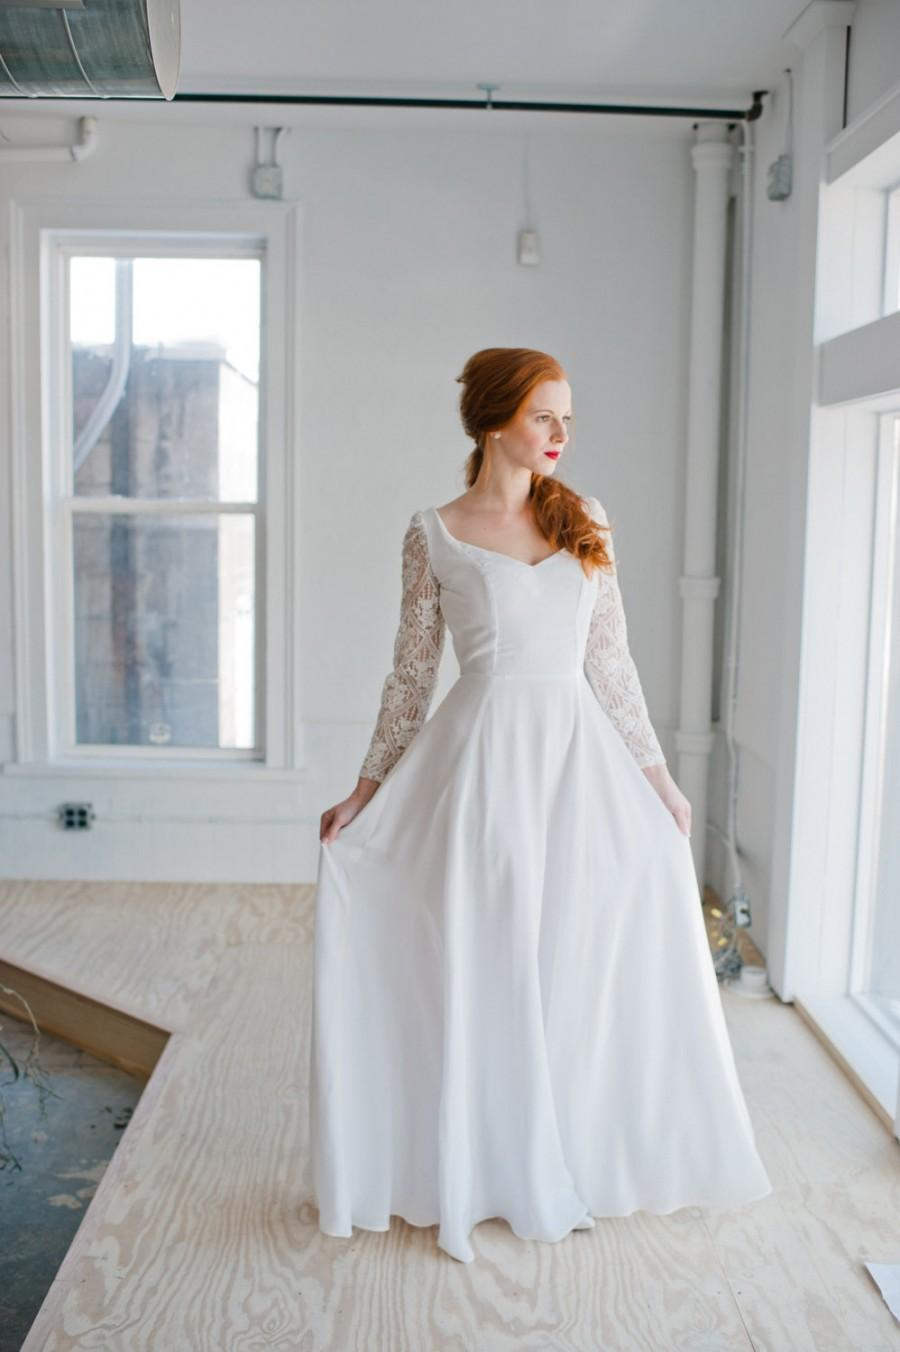 Wedding - Astrid Wedding Dress; Handmade Wedding Dress, elegant silk gown with wide v-neck & stunning beaded lace sleeves